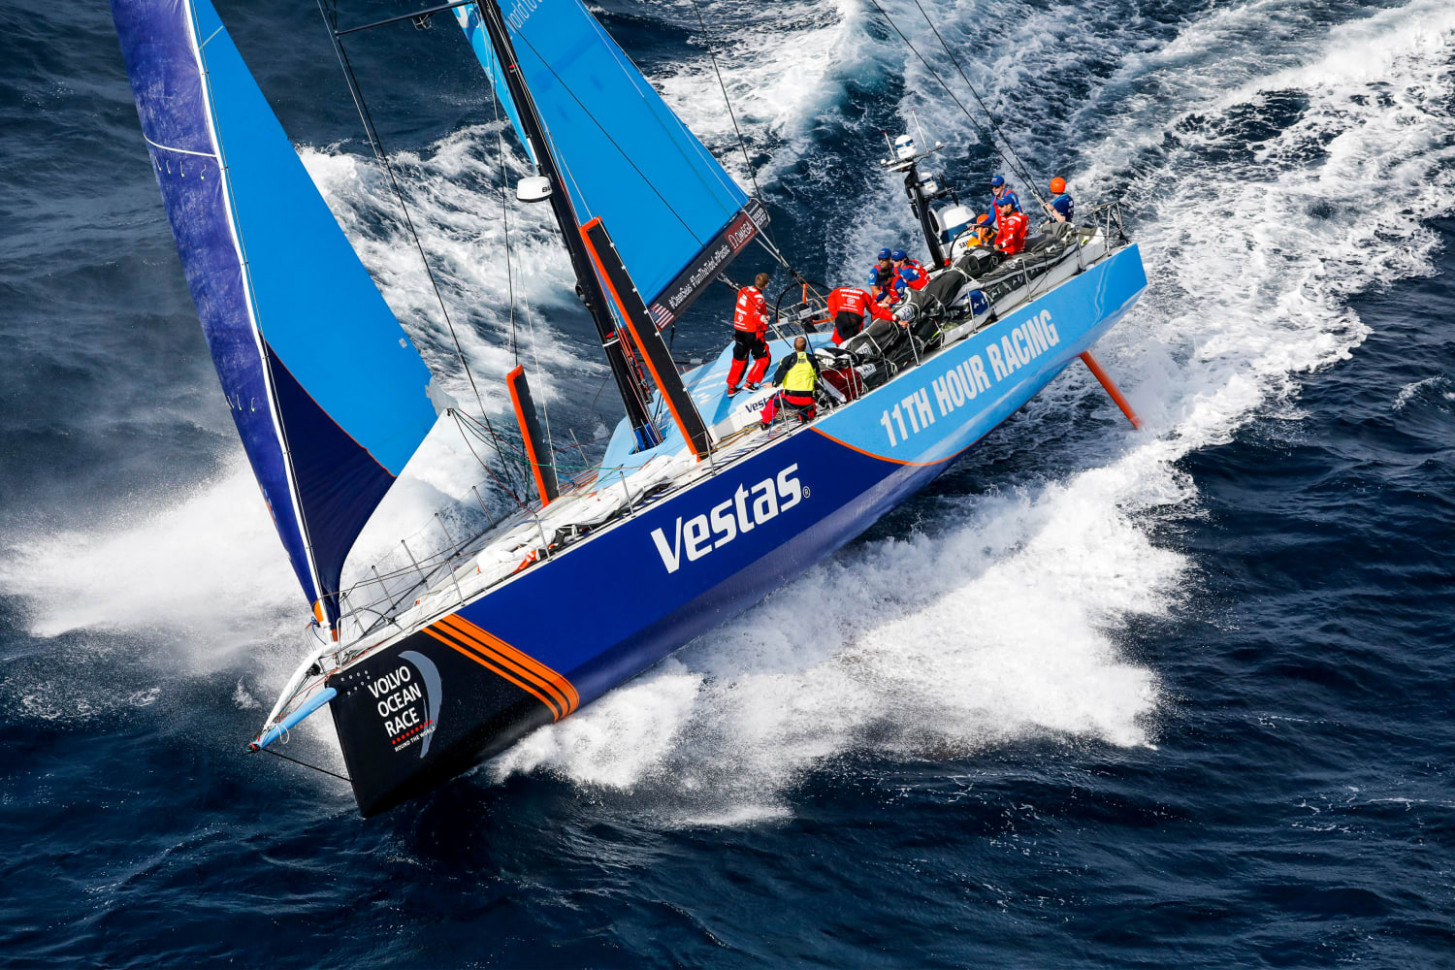 Episode 12: Alicante to Lisbon - volvo yacht race 2020